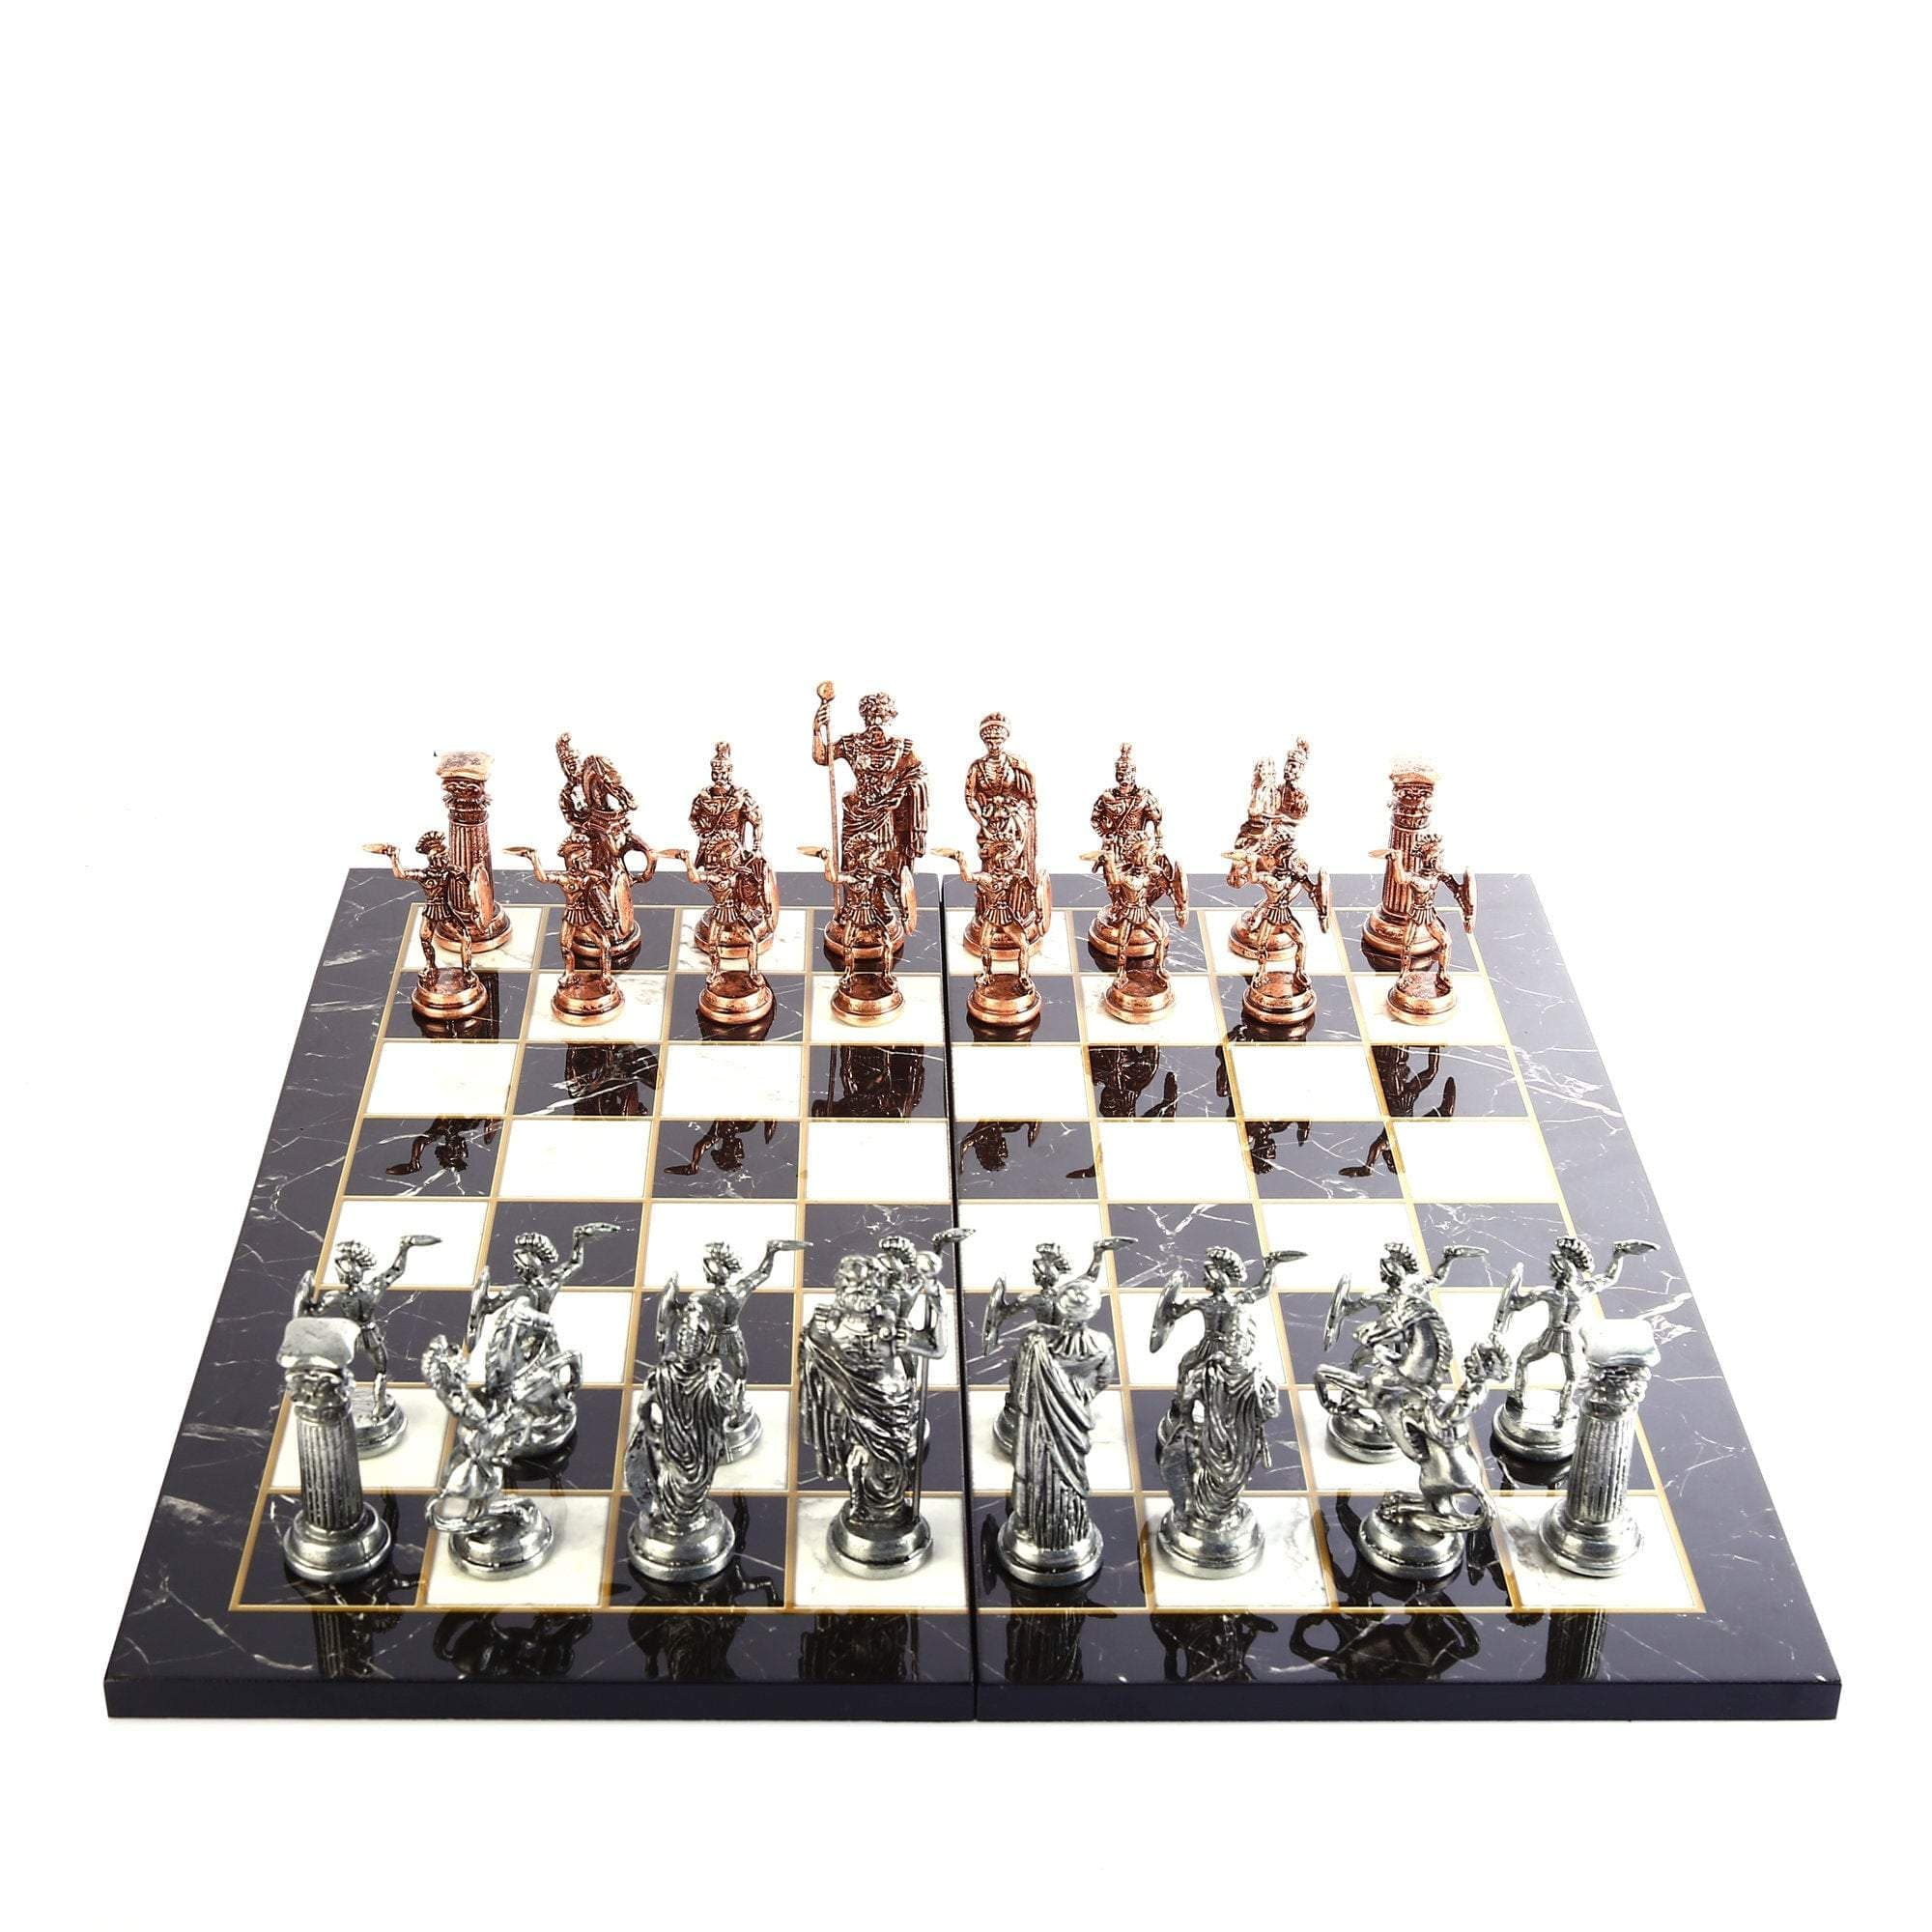 Ancient Rome Historical Metal Chess Set and marble Design Wood Chessboard Ancient Treasures Ancientreasures Viking Odin Thor Mjolnir Celtic Ancient Egypt Norse Norse Mythology